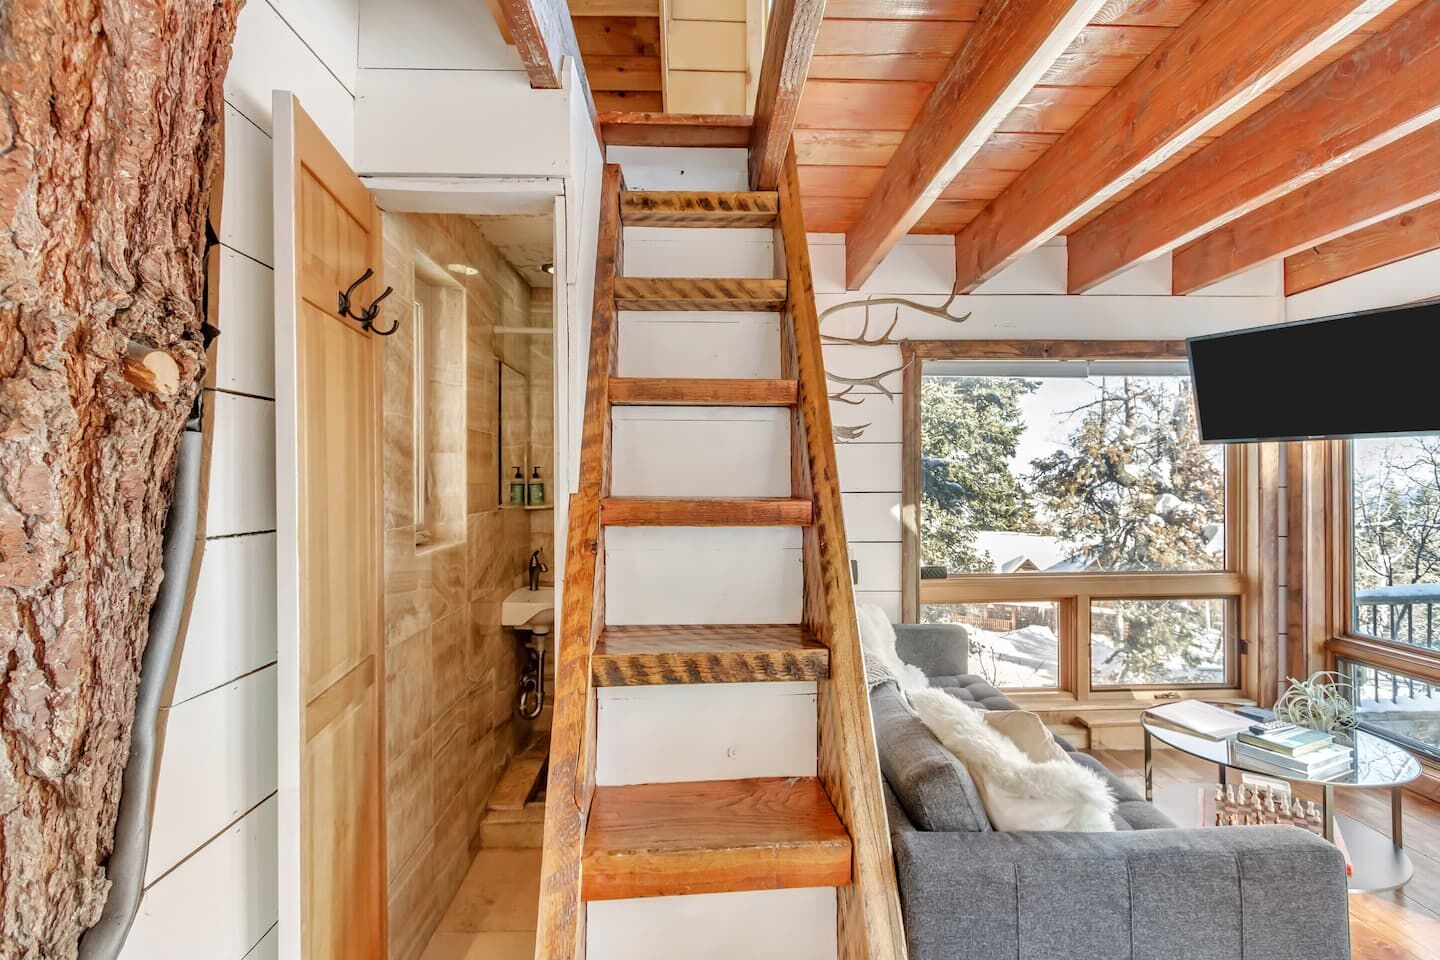 Park City treehouse is Airbnb's most-booked place in Utah. (Airbnb)